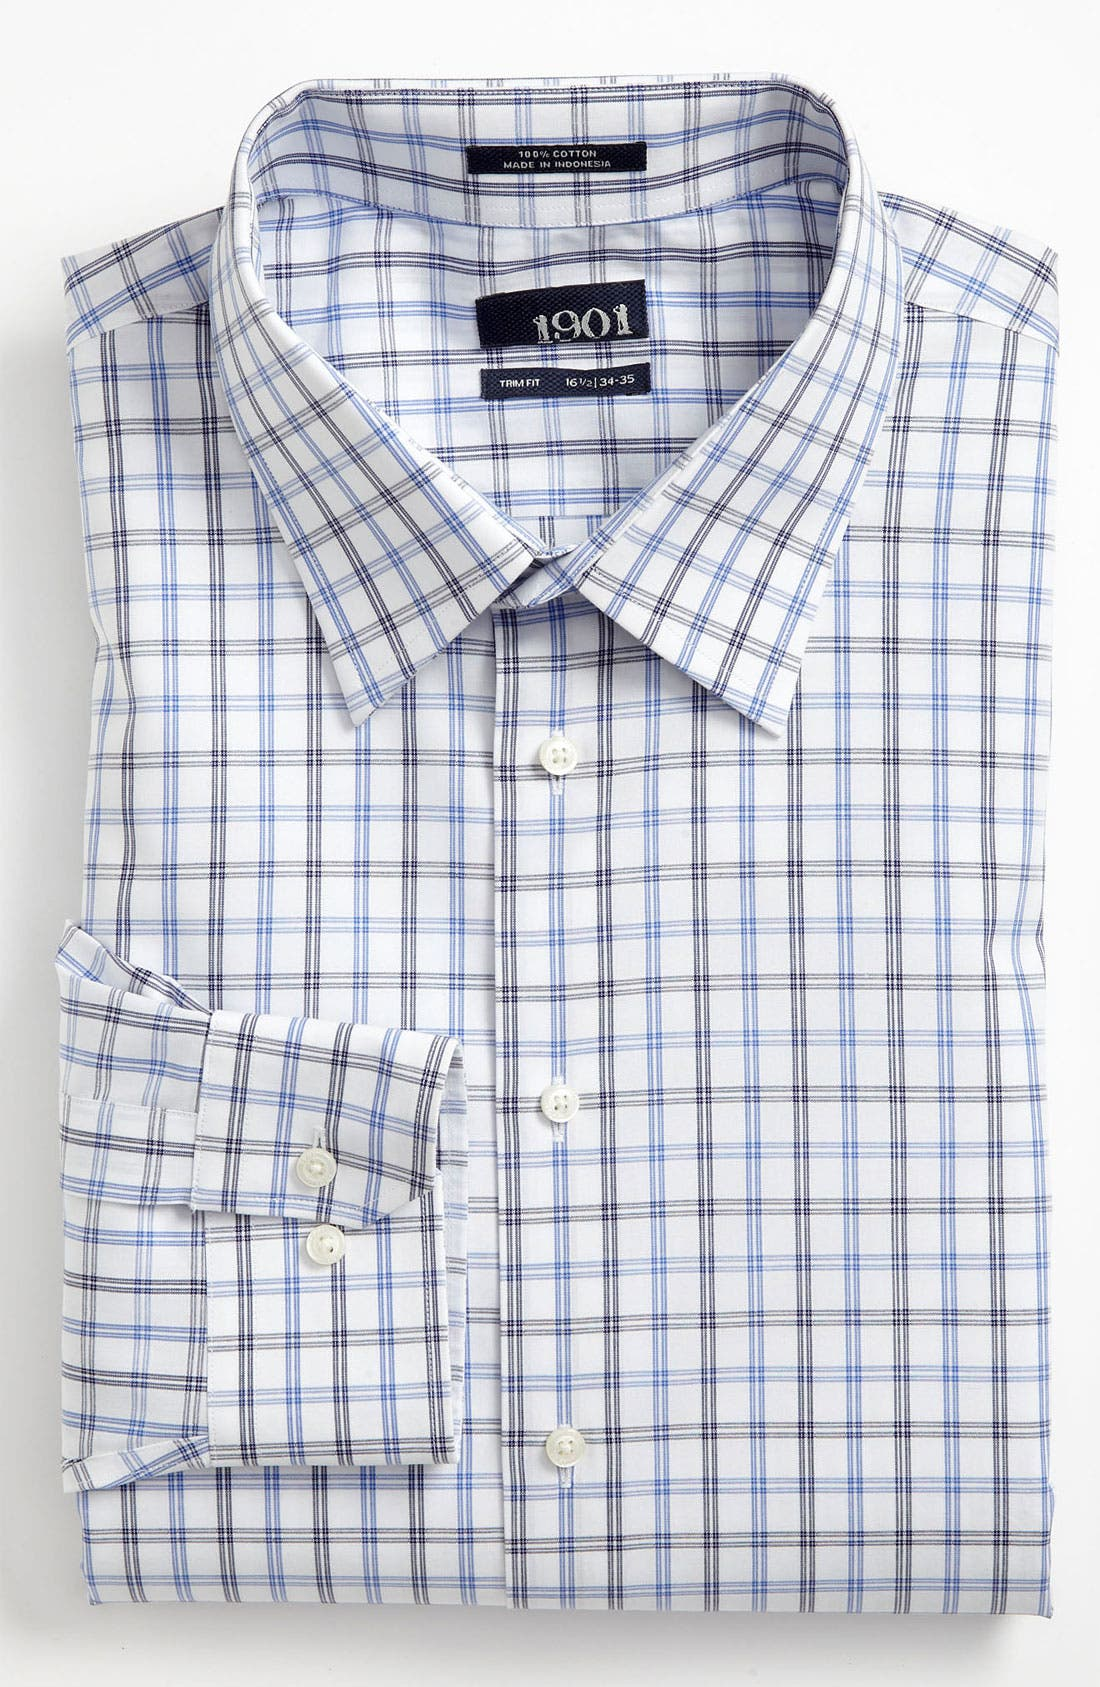 Alternate Image 1 Selected - 1901 Trim Fit Dress Shirt (Online Only)